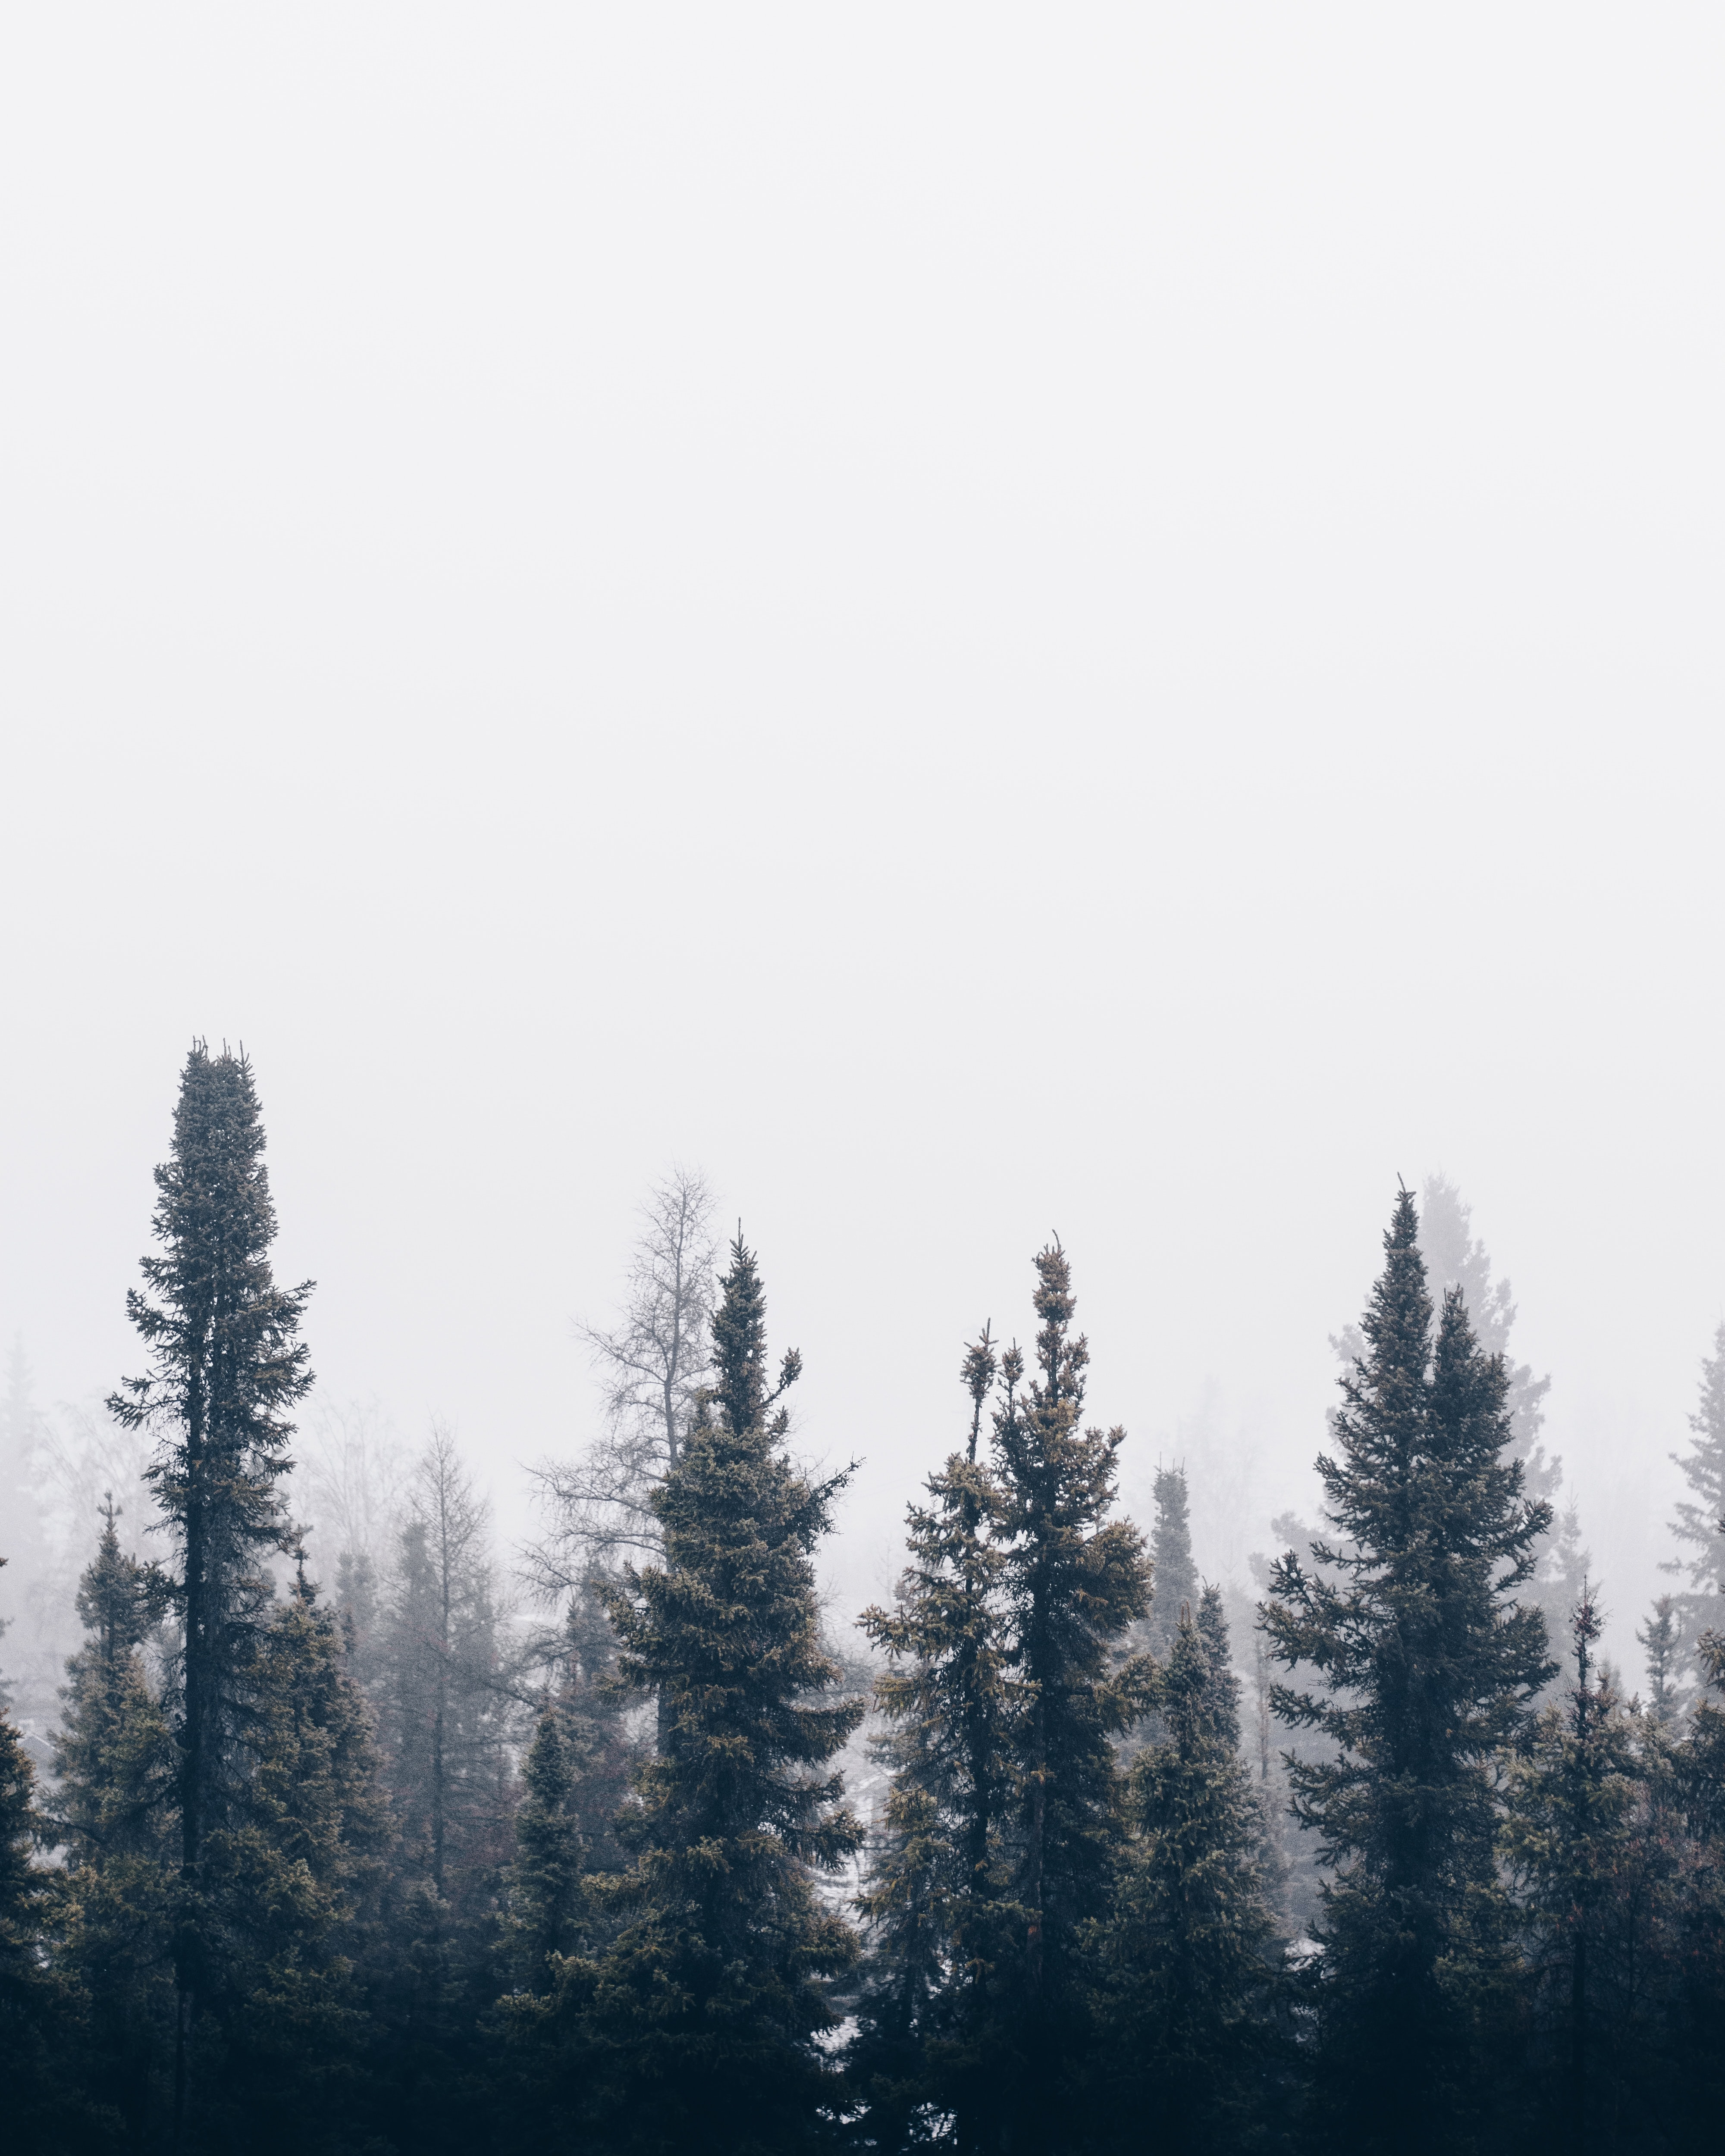 Tall pine trees shrouded in mist against a pale sky